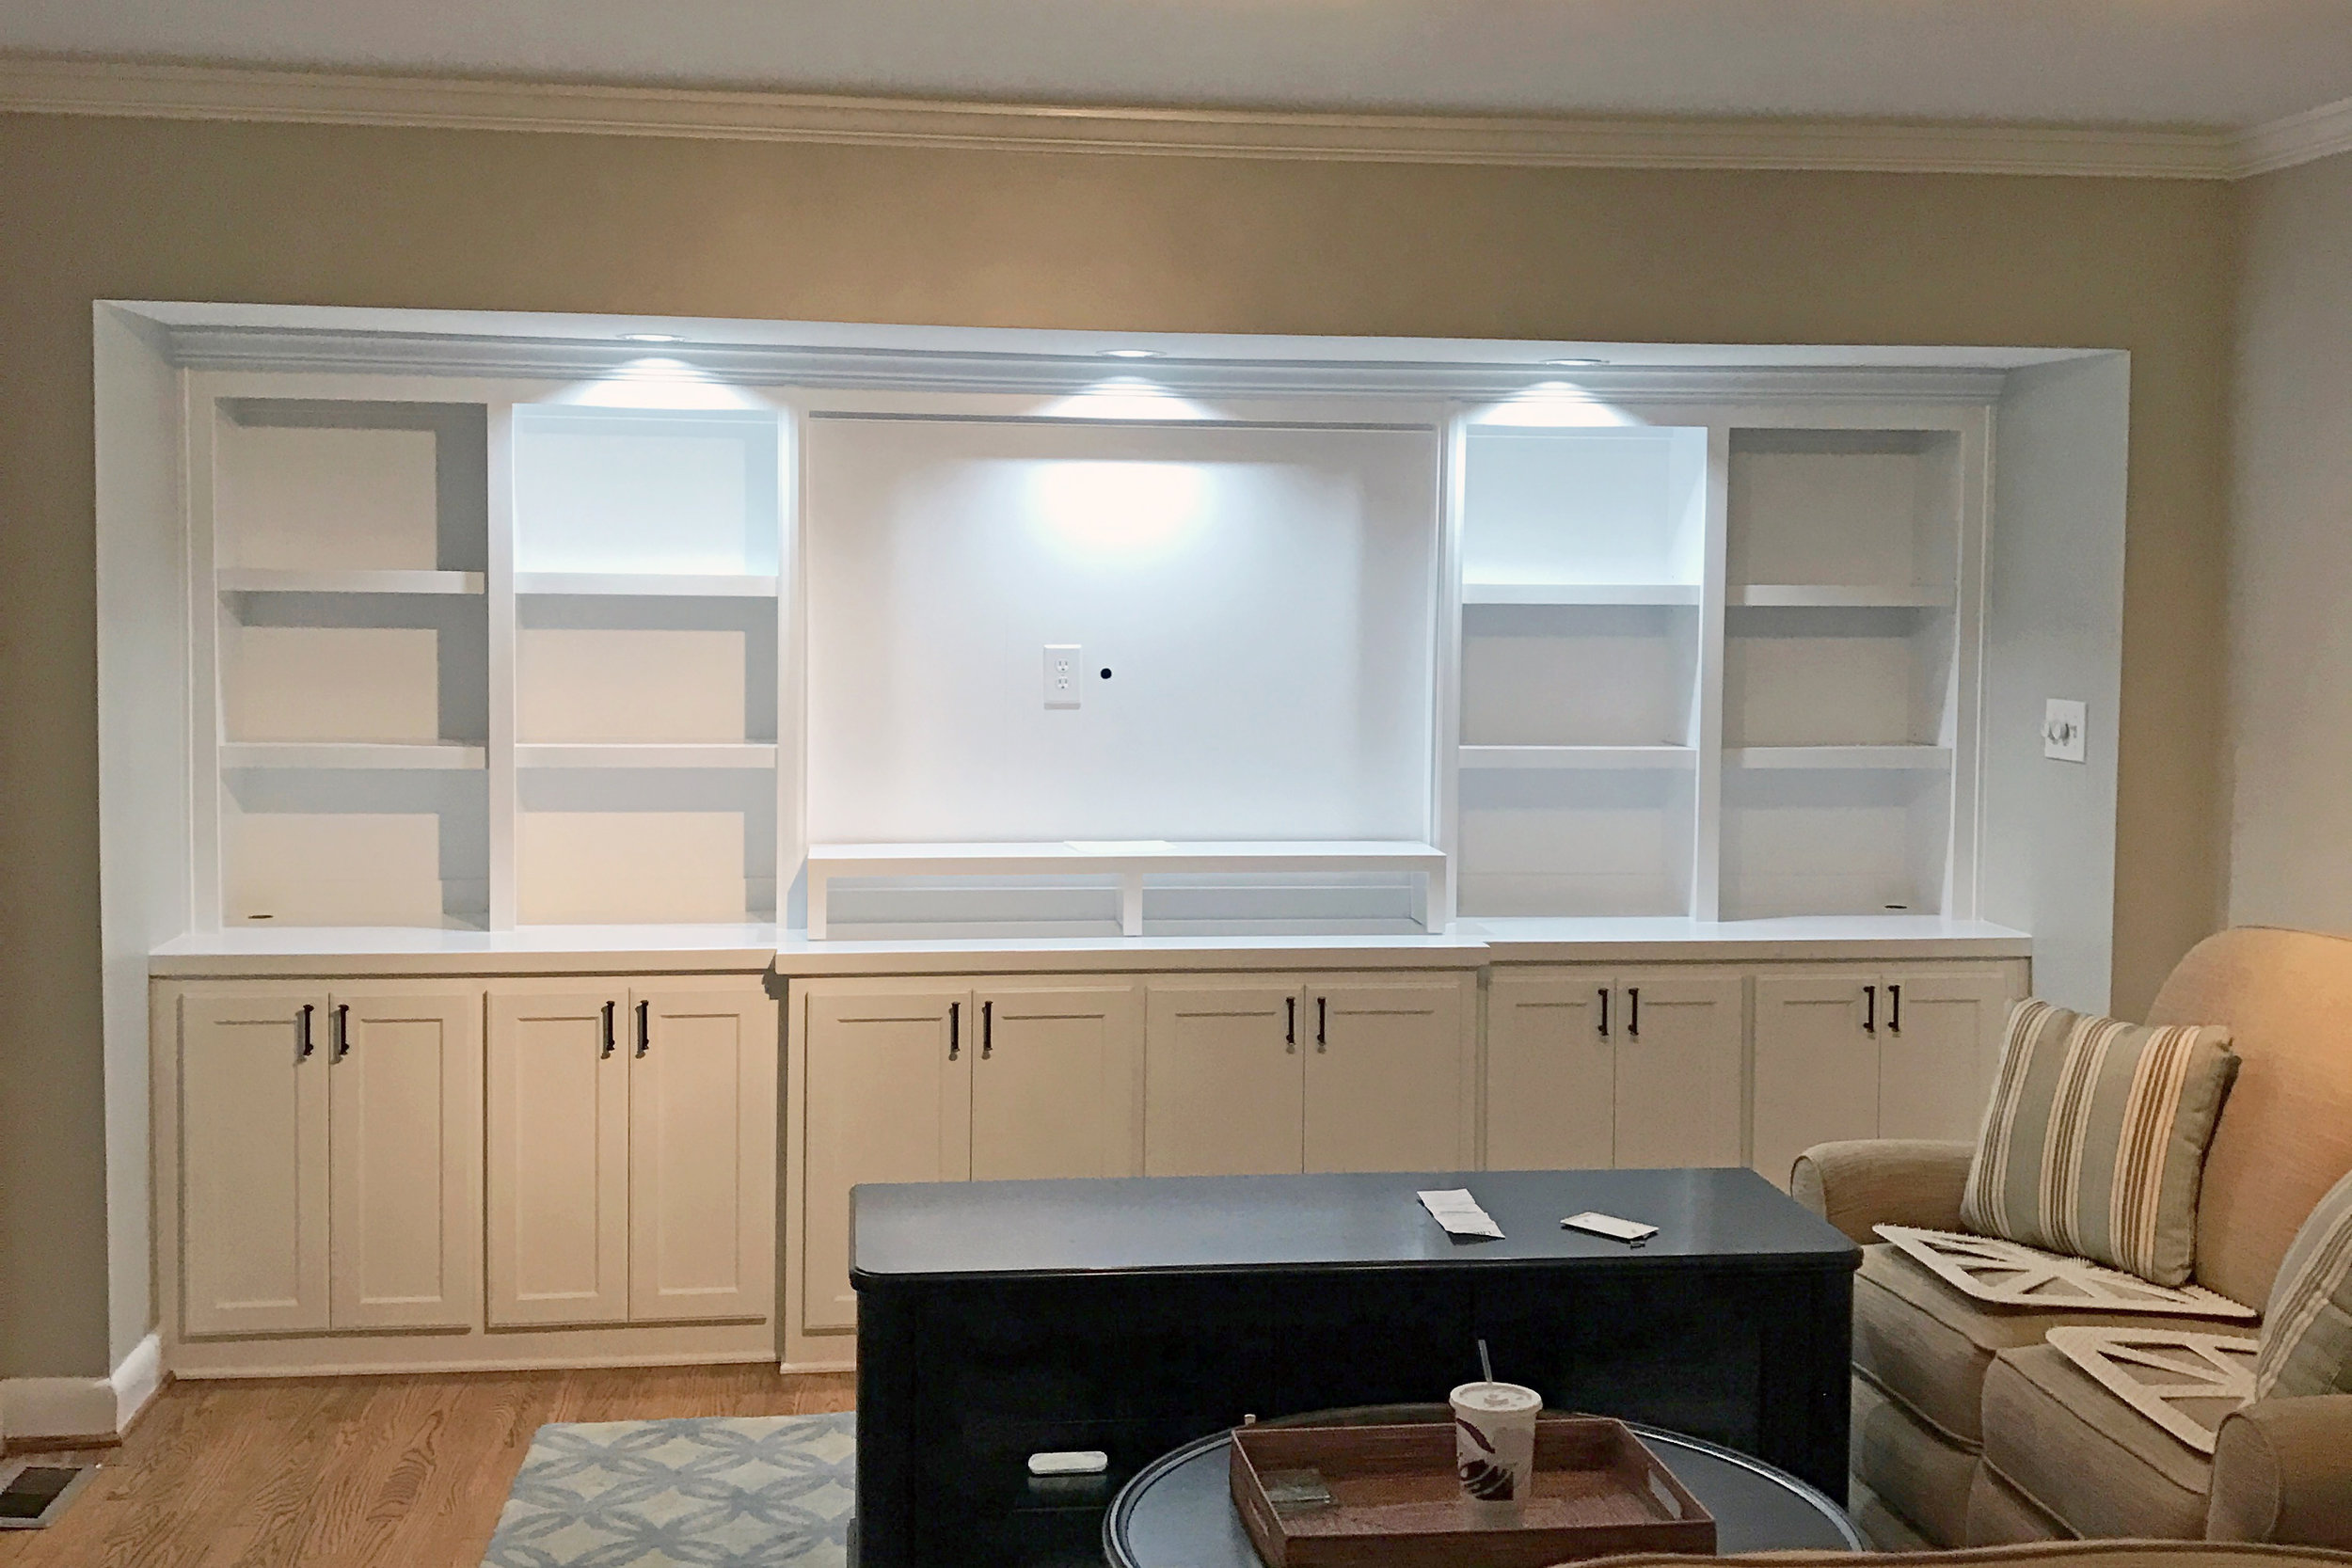 Custom Recessed Built-In - After